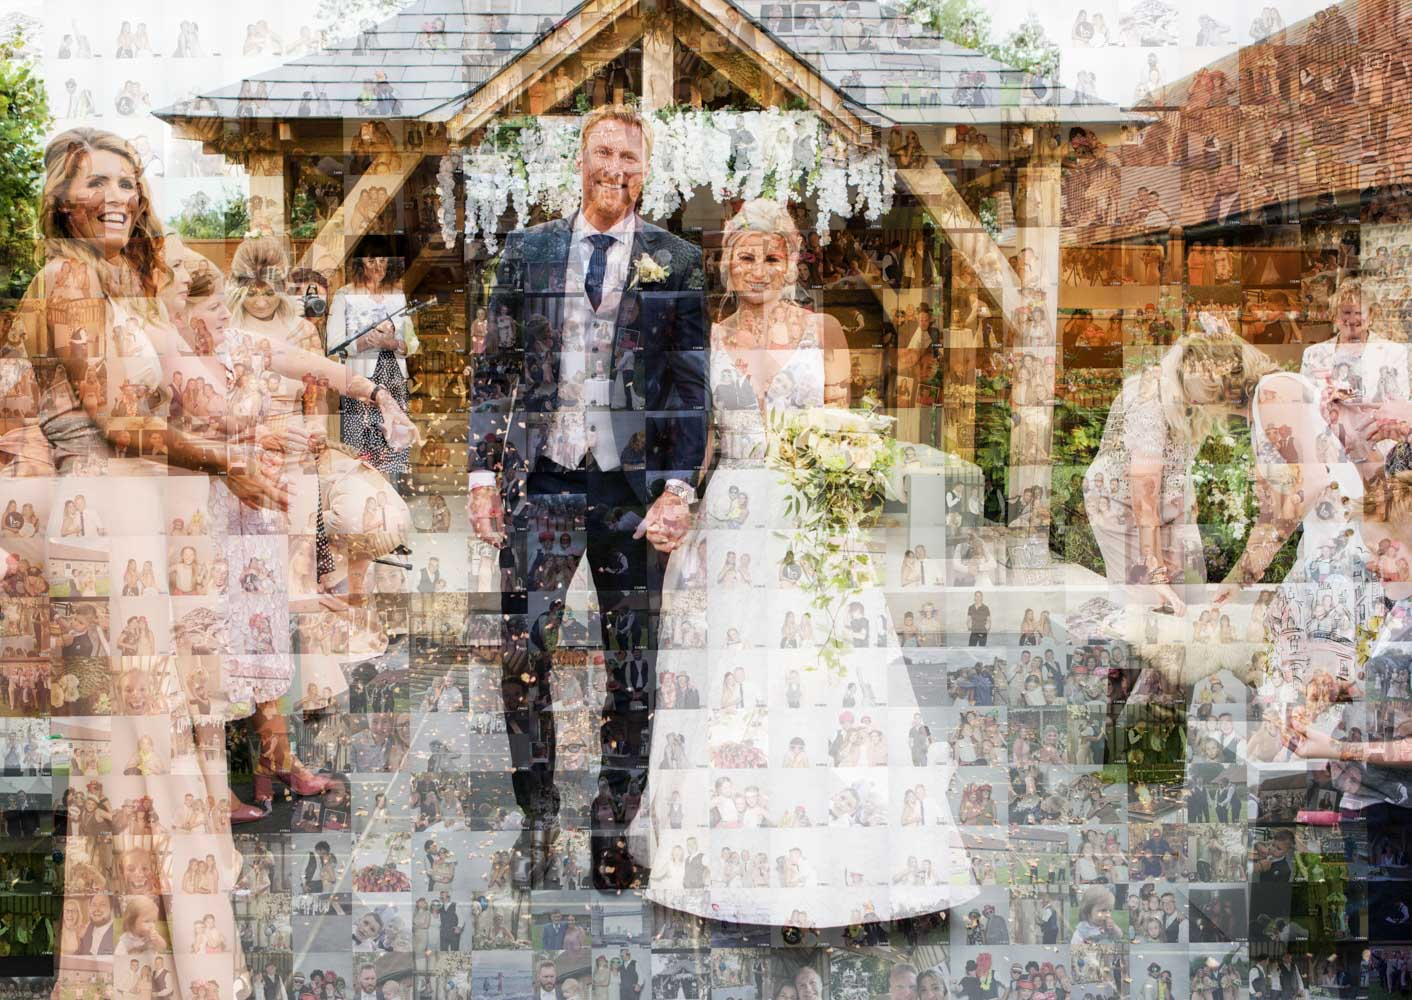 wedding photo mosaic hire